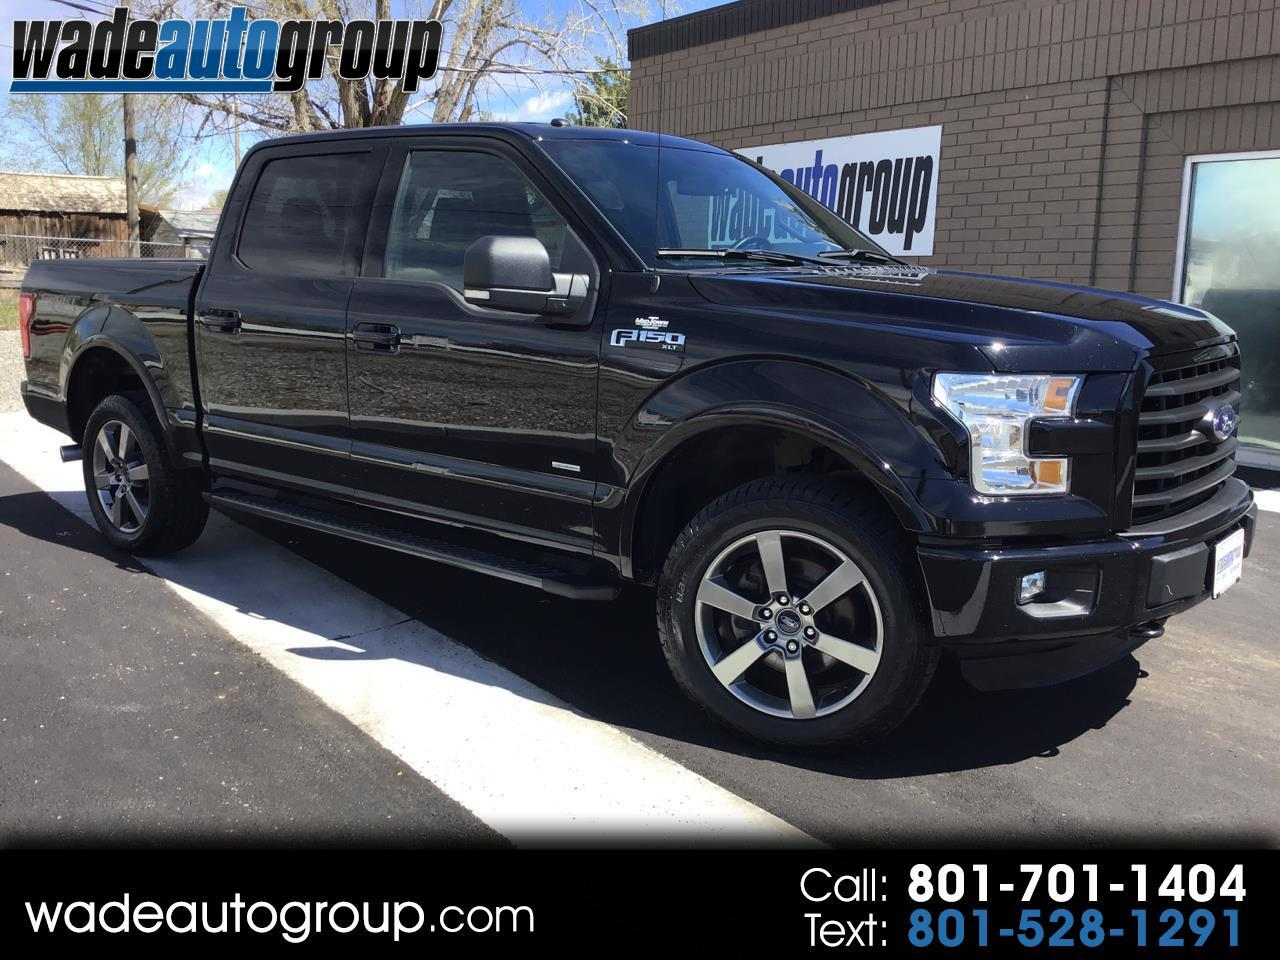 2016 Ford F-150 XLT Sport SuperCrew 3.5L V6 Turbo Ecoboost 4WD